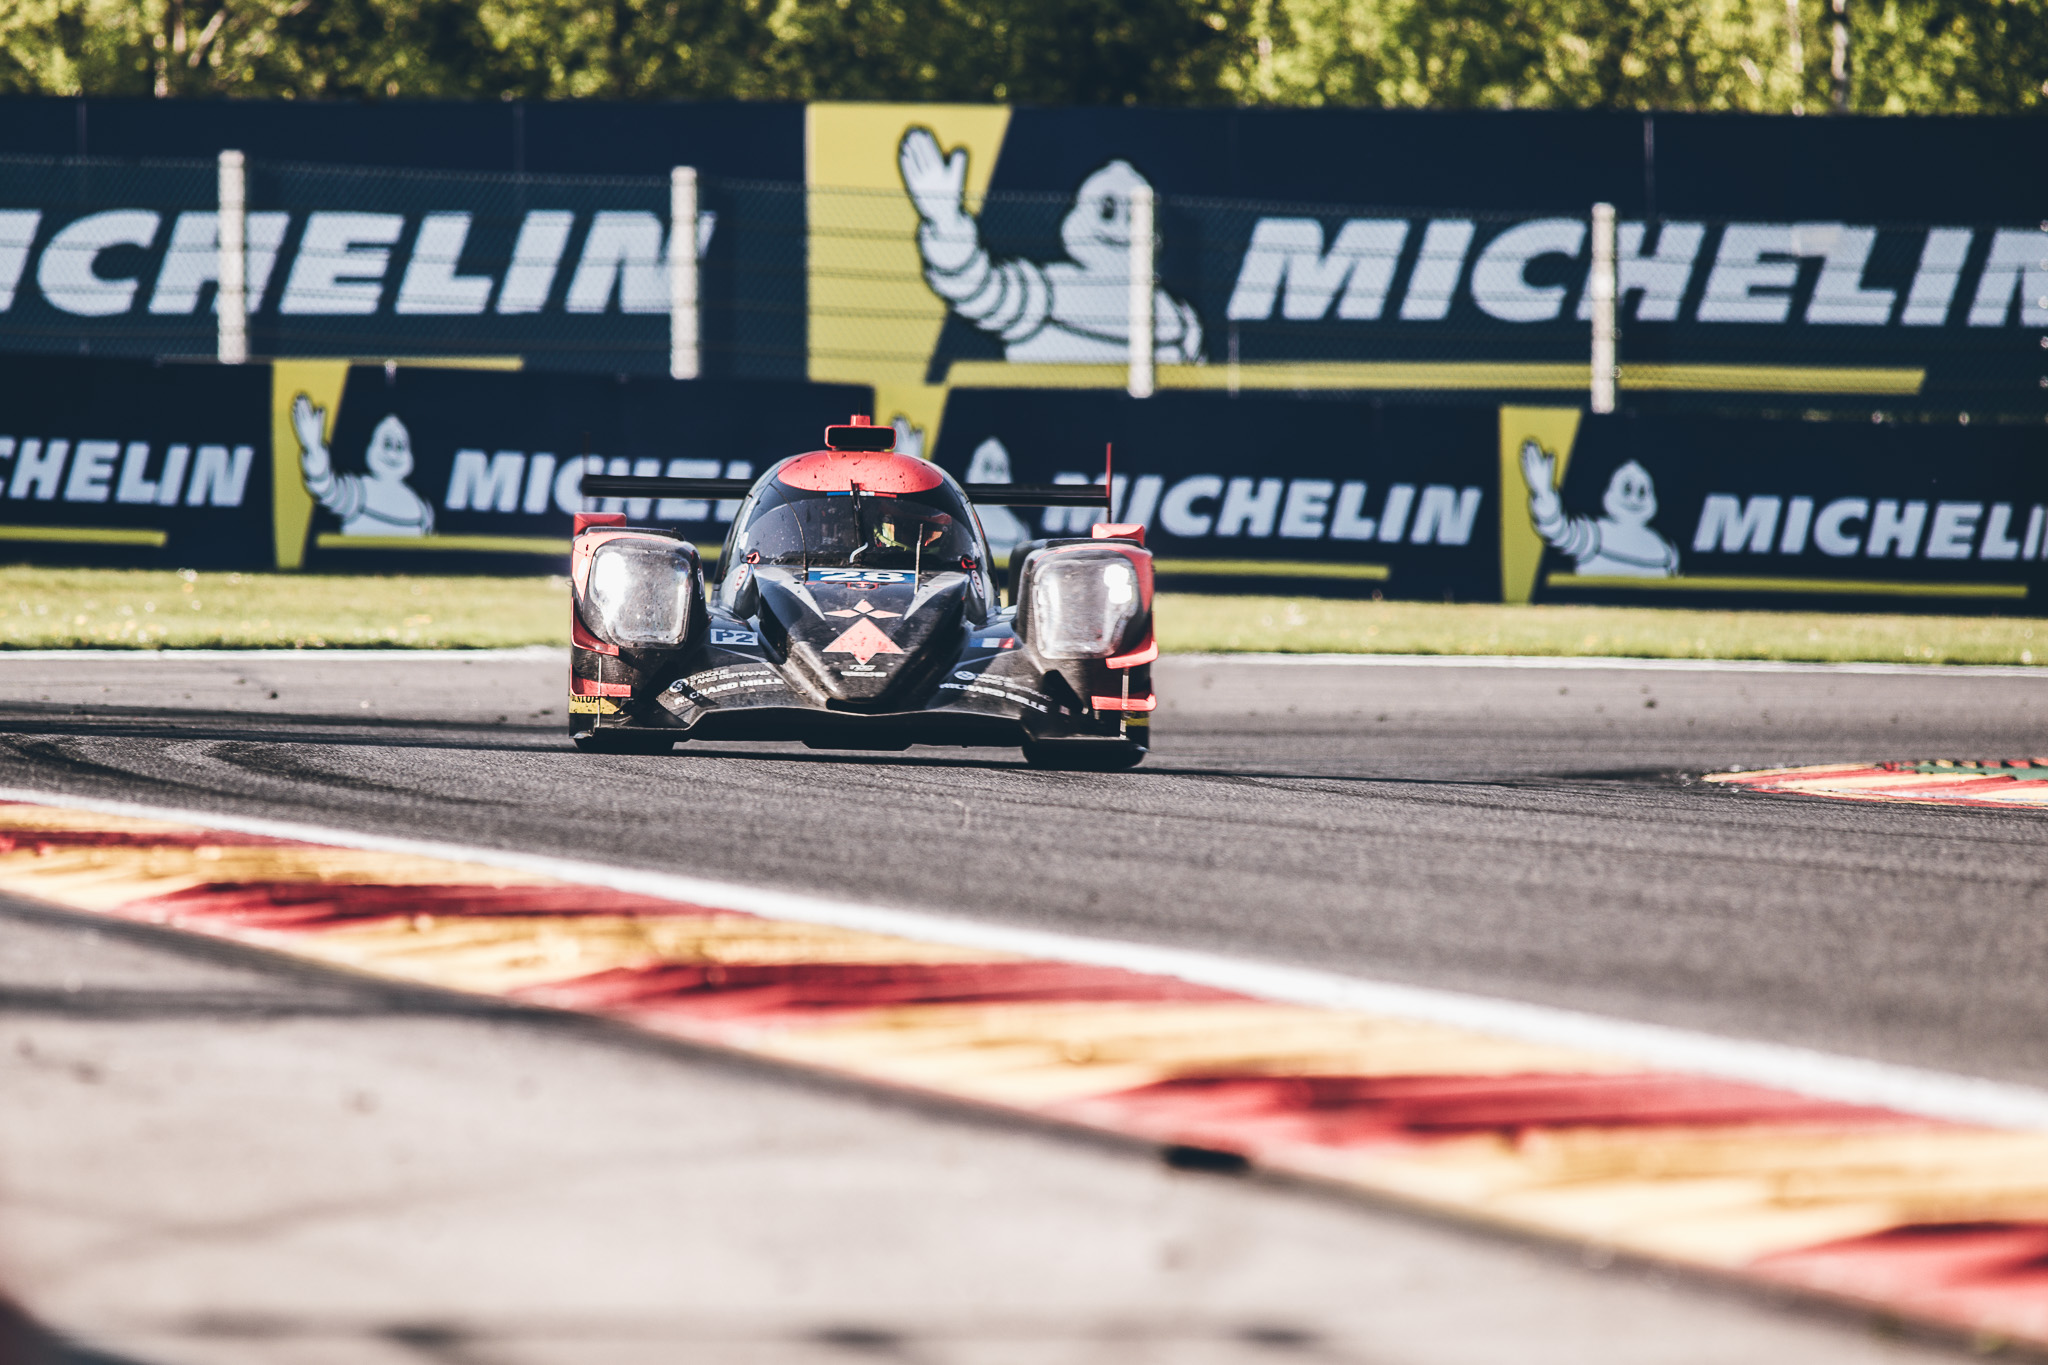 Loic Duval's Double Duty Weekend: Driving an LMP2-car is like driving a bicycle for me